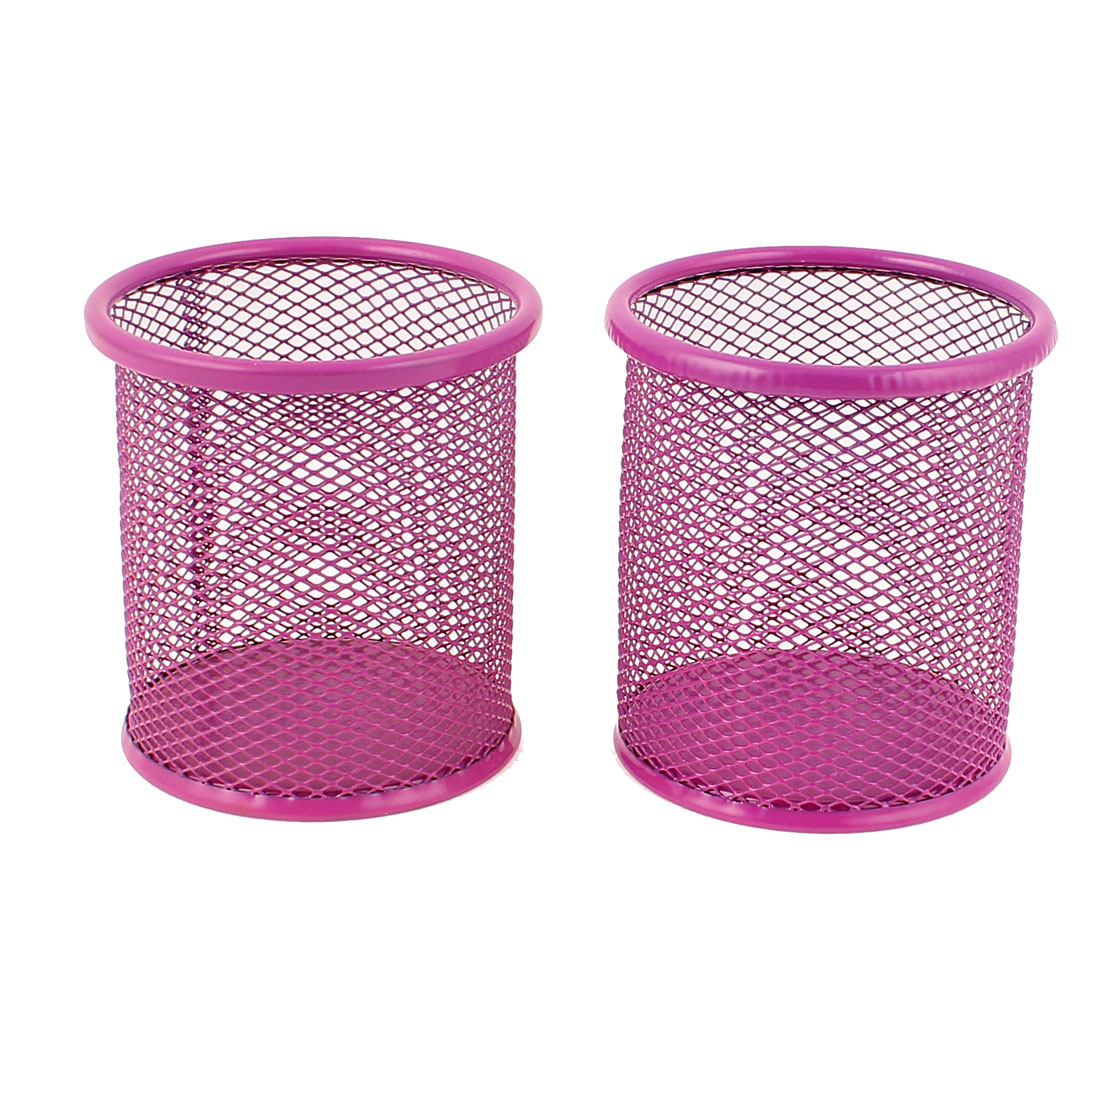 Metallic Mesh Cylinder Shaped Stationery Pen Holder Box Container Fuchsia 2Pcs